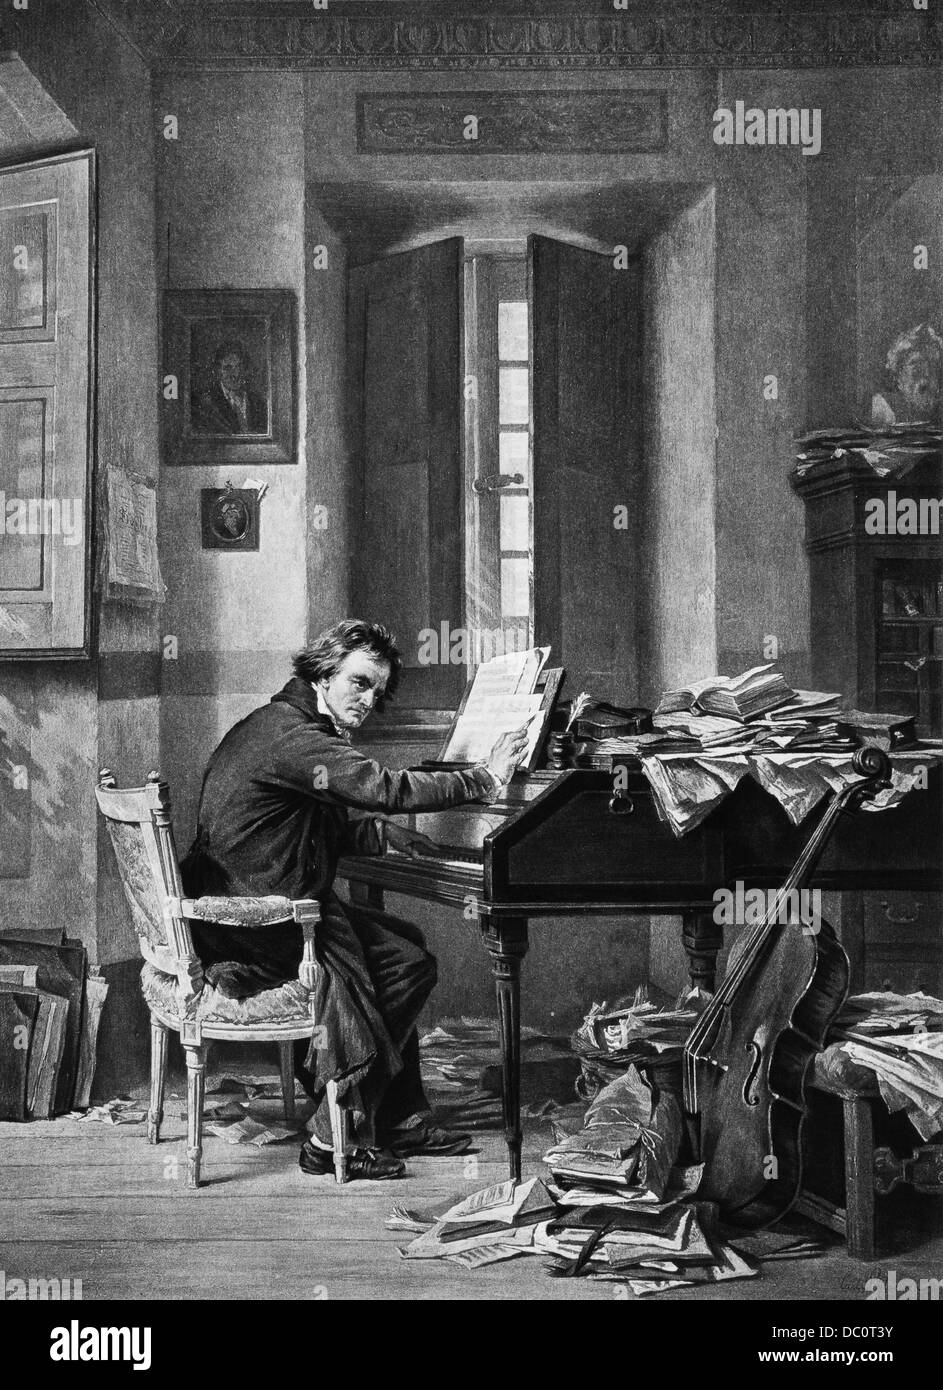 1800s 1811 PAINTING BY SCHLOESSER OF LUDWIG VAN BEETHOVEN IN HIS STUDY IN VIENNA SEATED AT THE PIANO COMPOSING - Stock Image